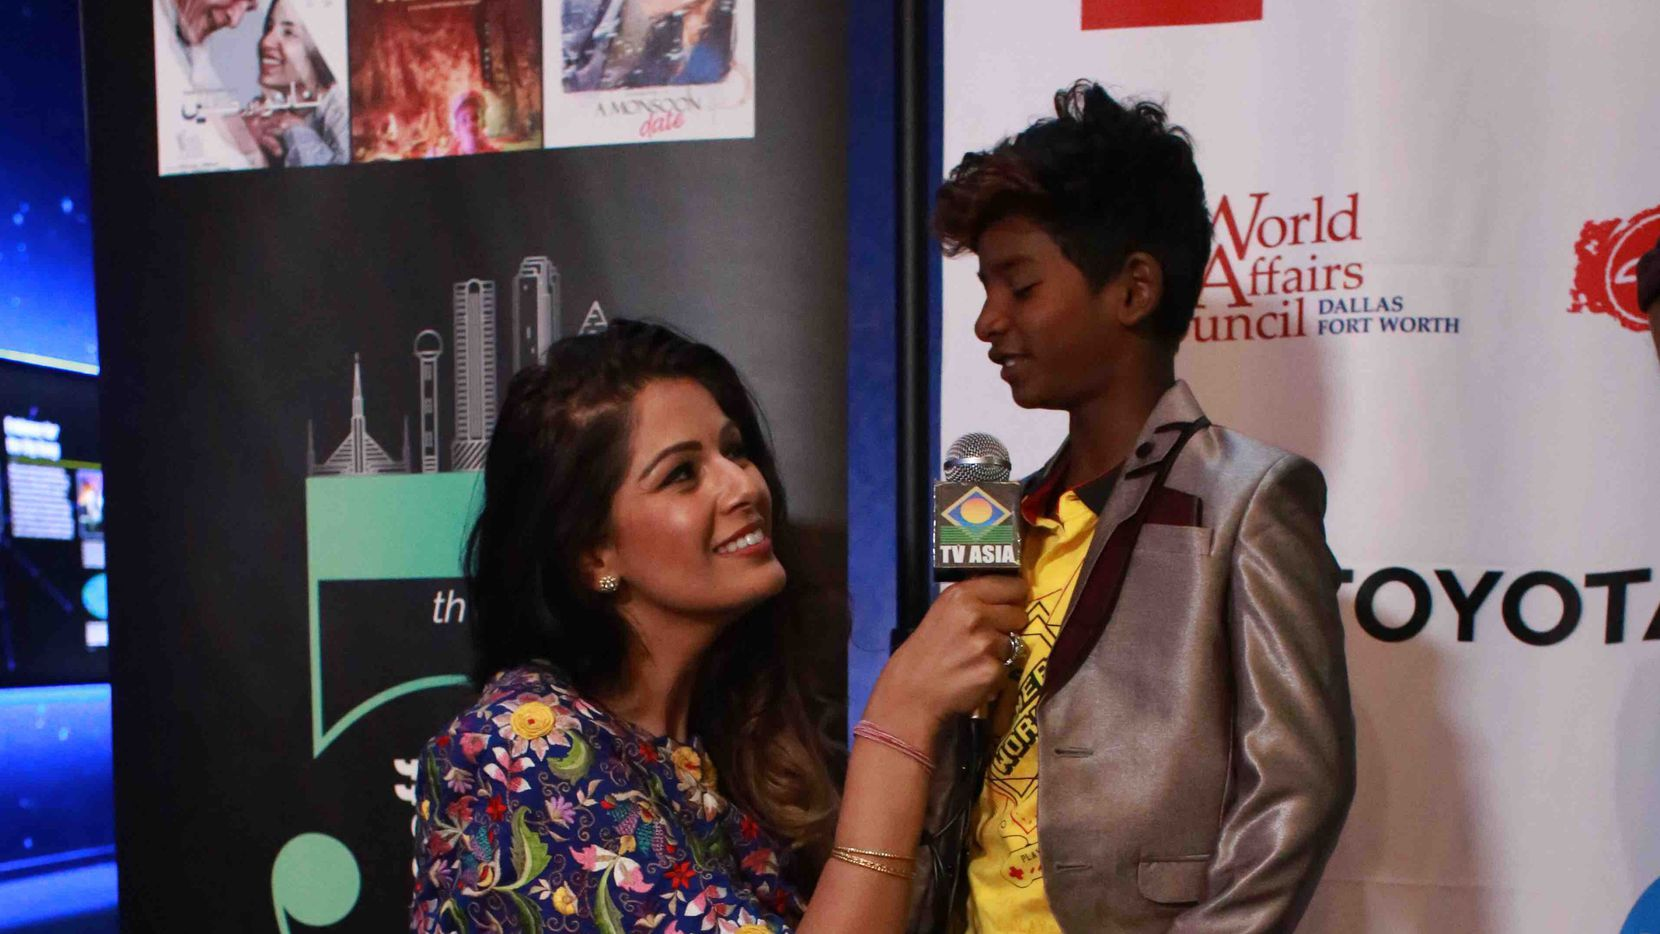 """Actor Sunny Pawar, who starred in the film 'Lion' and also 'Chippa,"""" is interviewed at the 5th Annual DFW South Asian Film Festival. Courtesy of DFW South Asian Film Festival."""